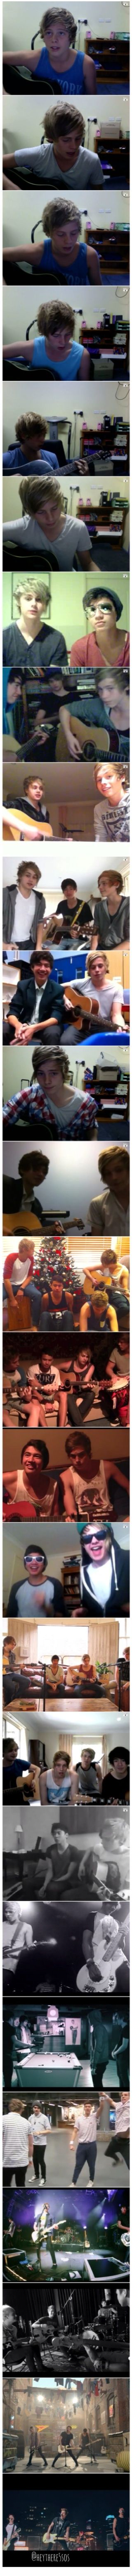 All 5sos covers and videos that haven't been deleted. [ @Heythere5sos ]